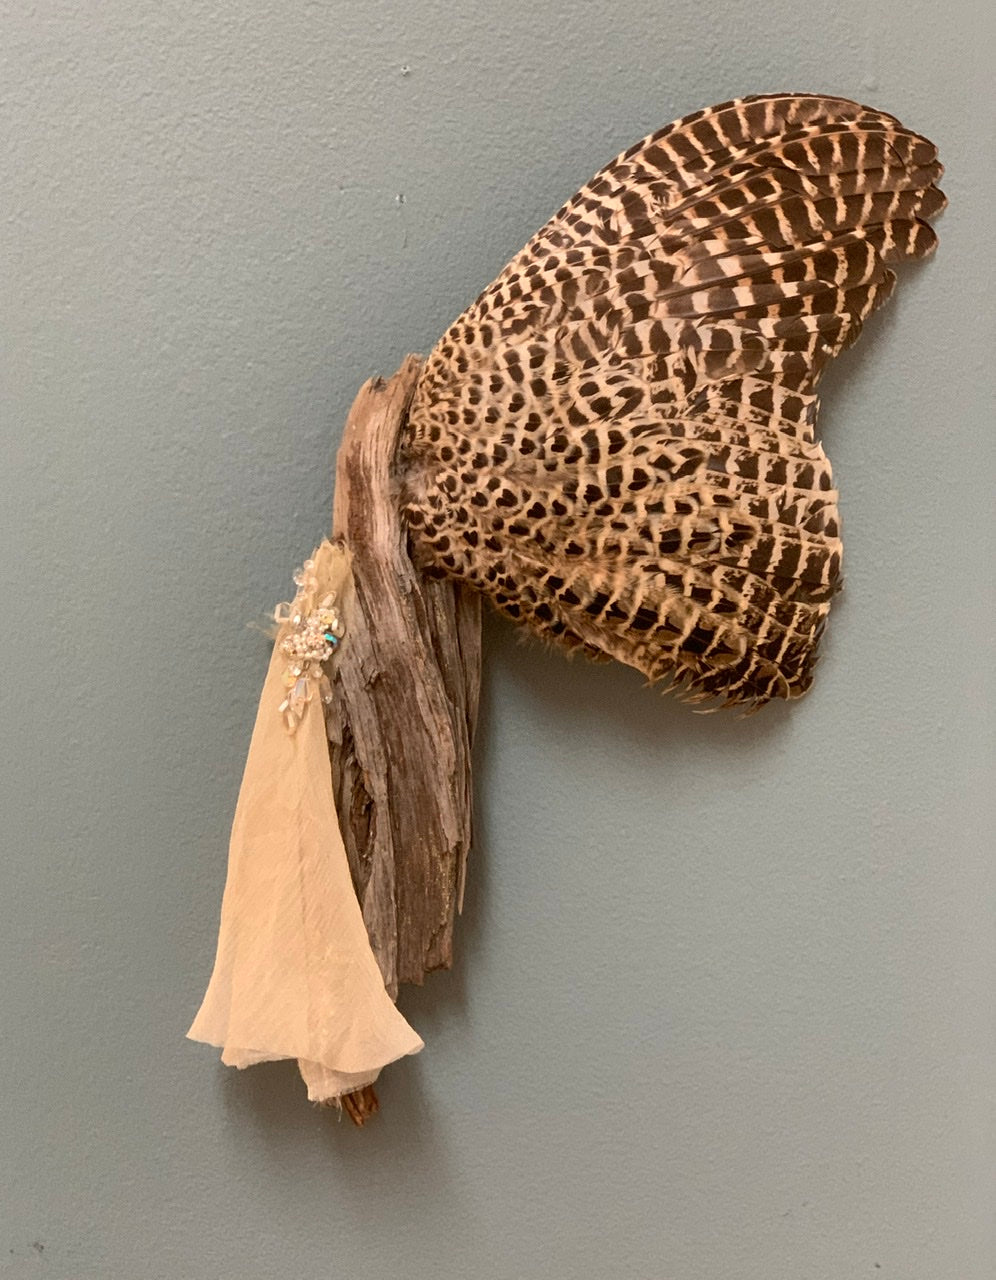 Spirit Wand 9 - Ringneck Pheasant Wing MIxed Media Wall Sculpture